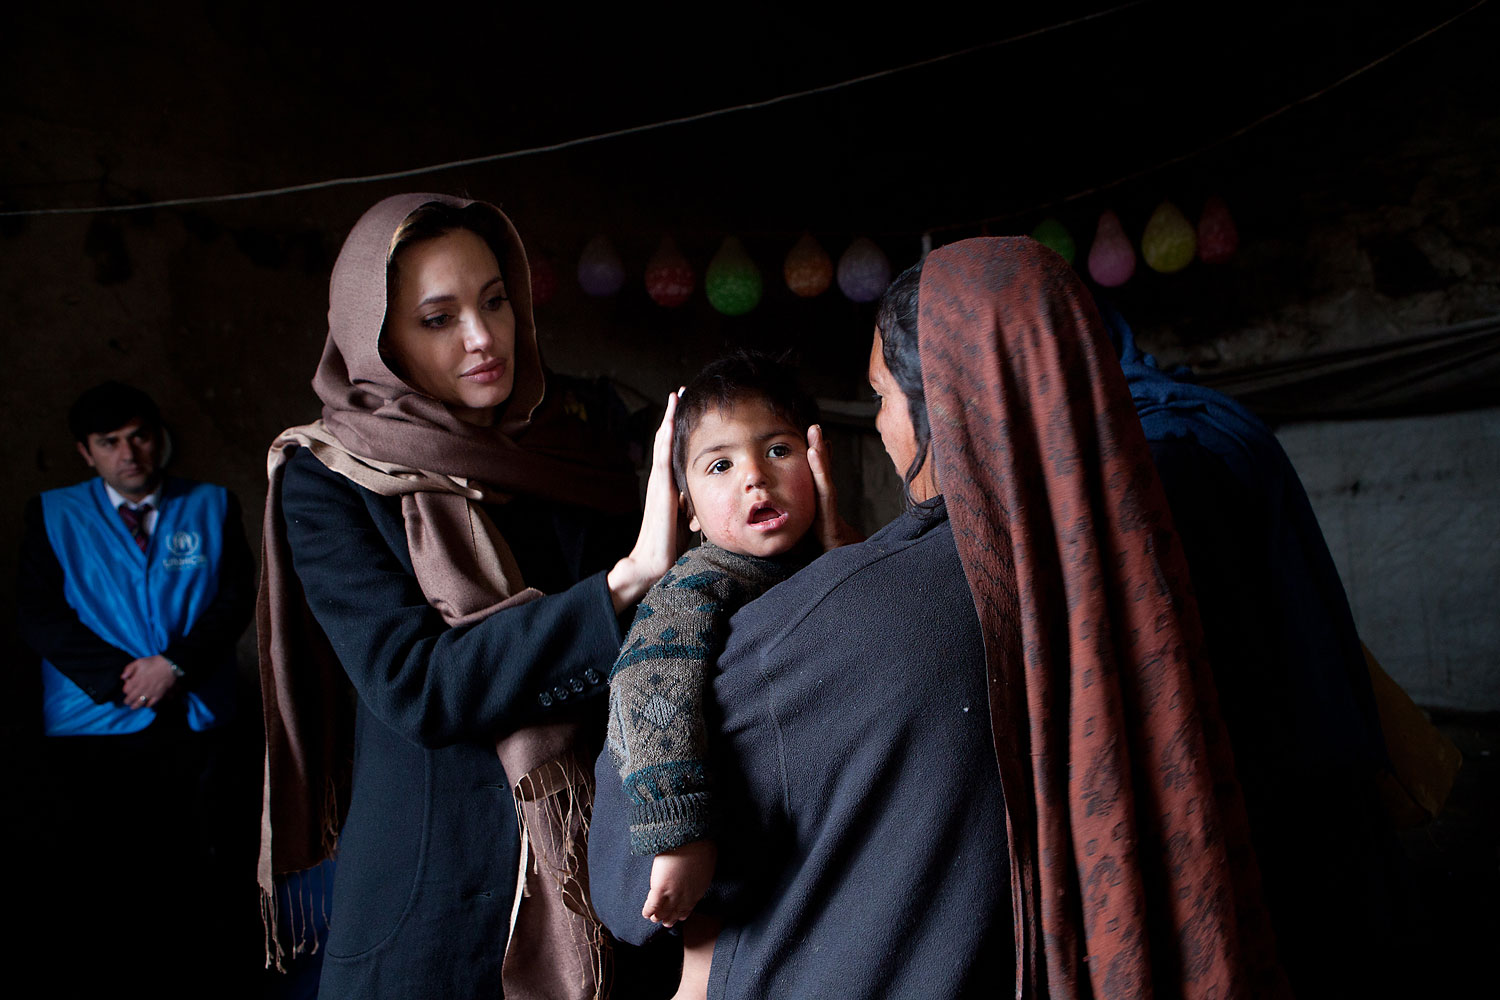 Angelina Jolie, meets with Khanum Gul, 35, a mother of 8 and her youngest son, Samir at their makeshift home at Tamil Mill Bus site in Kabul city, Afghanistan in Feb. 2011.